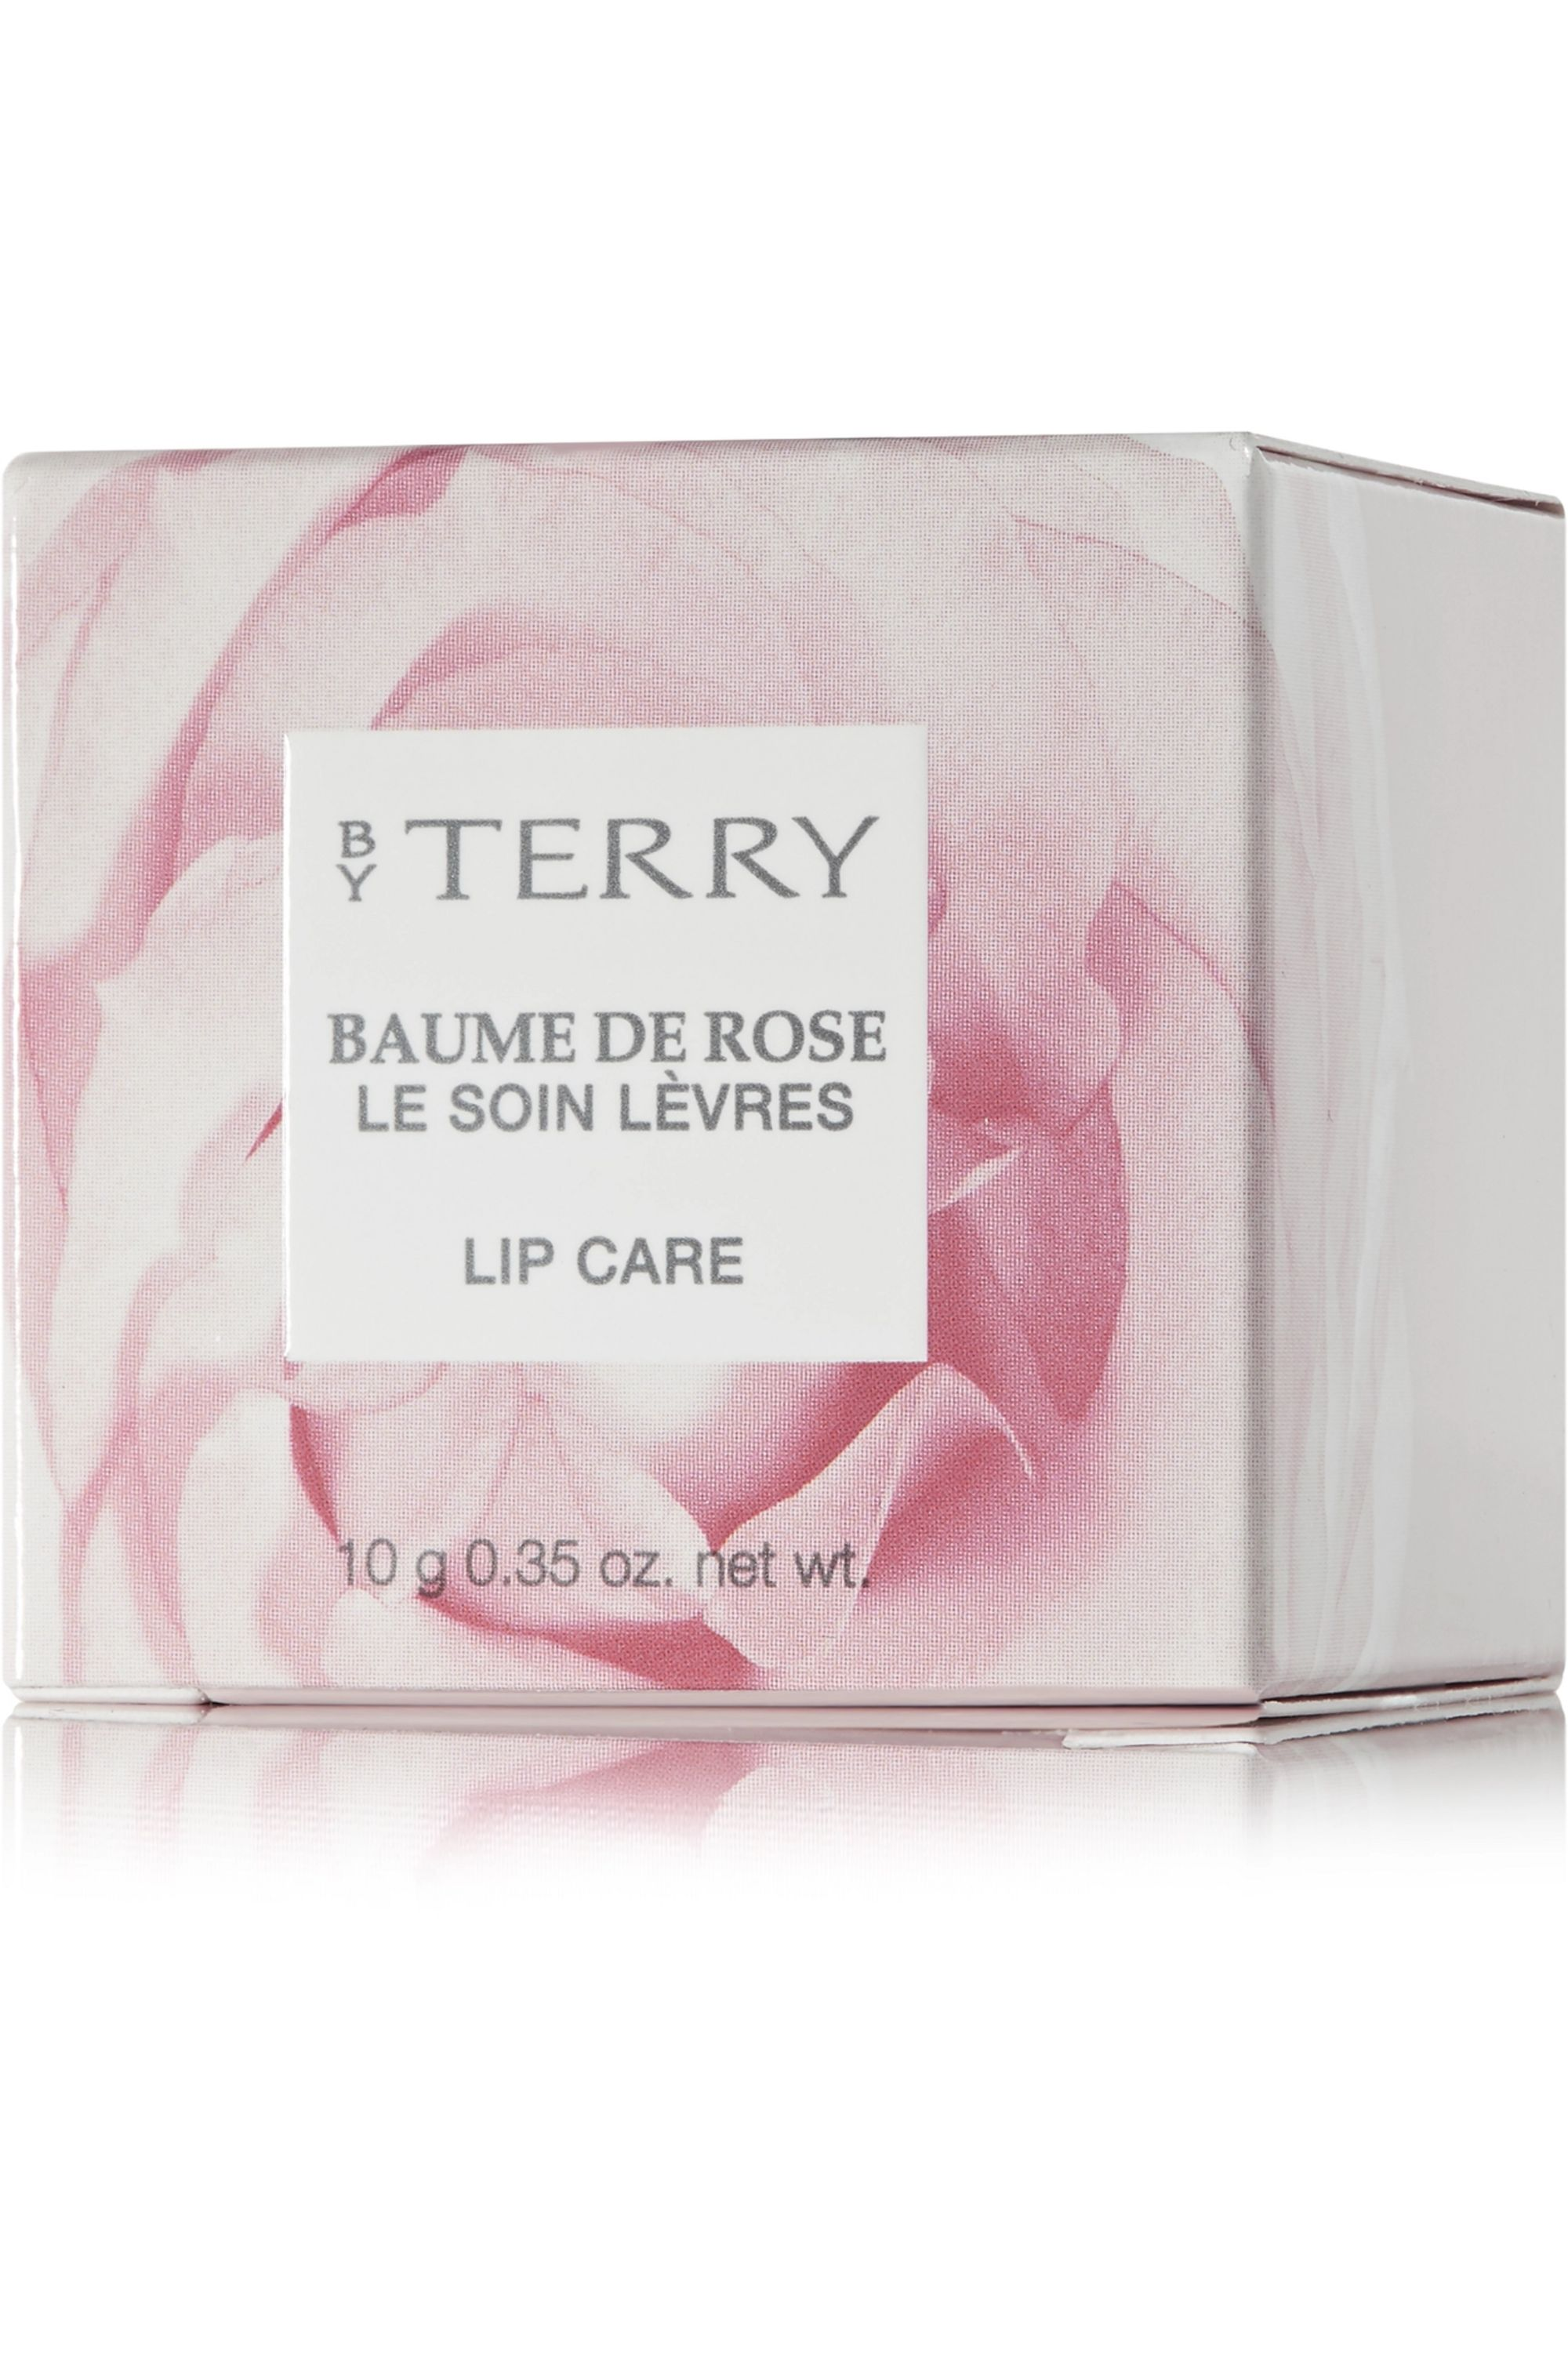 BY TERRY Baume De Rose Lip and Nail Balm, 10g